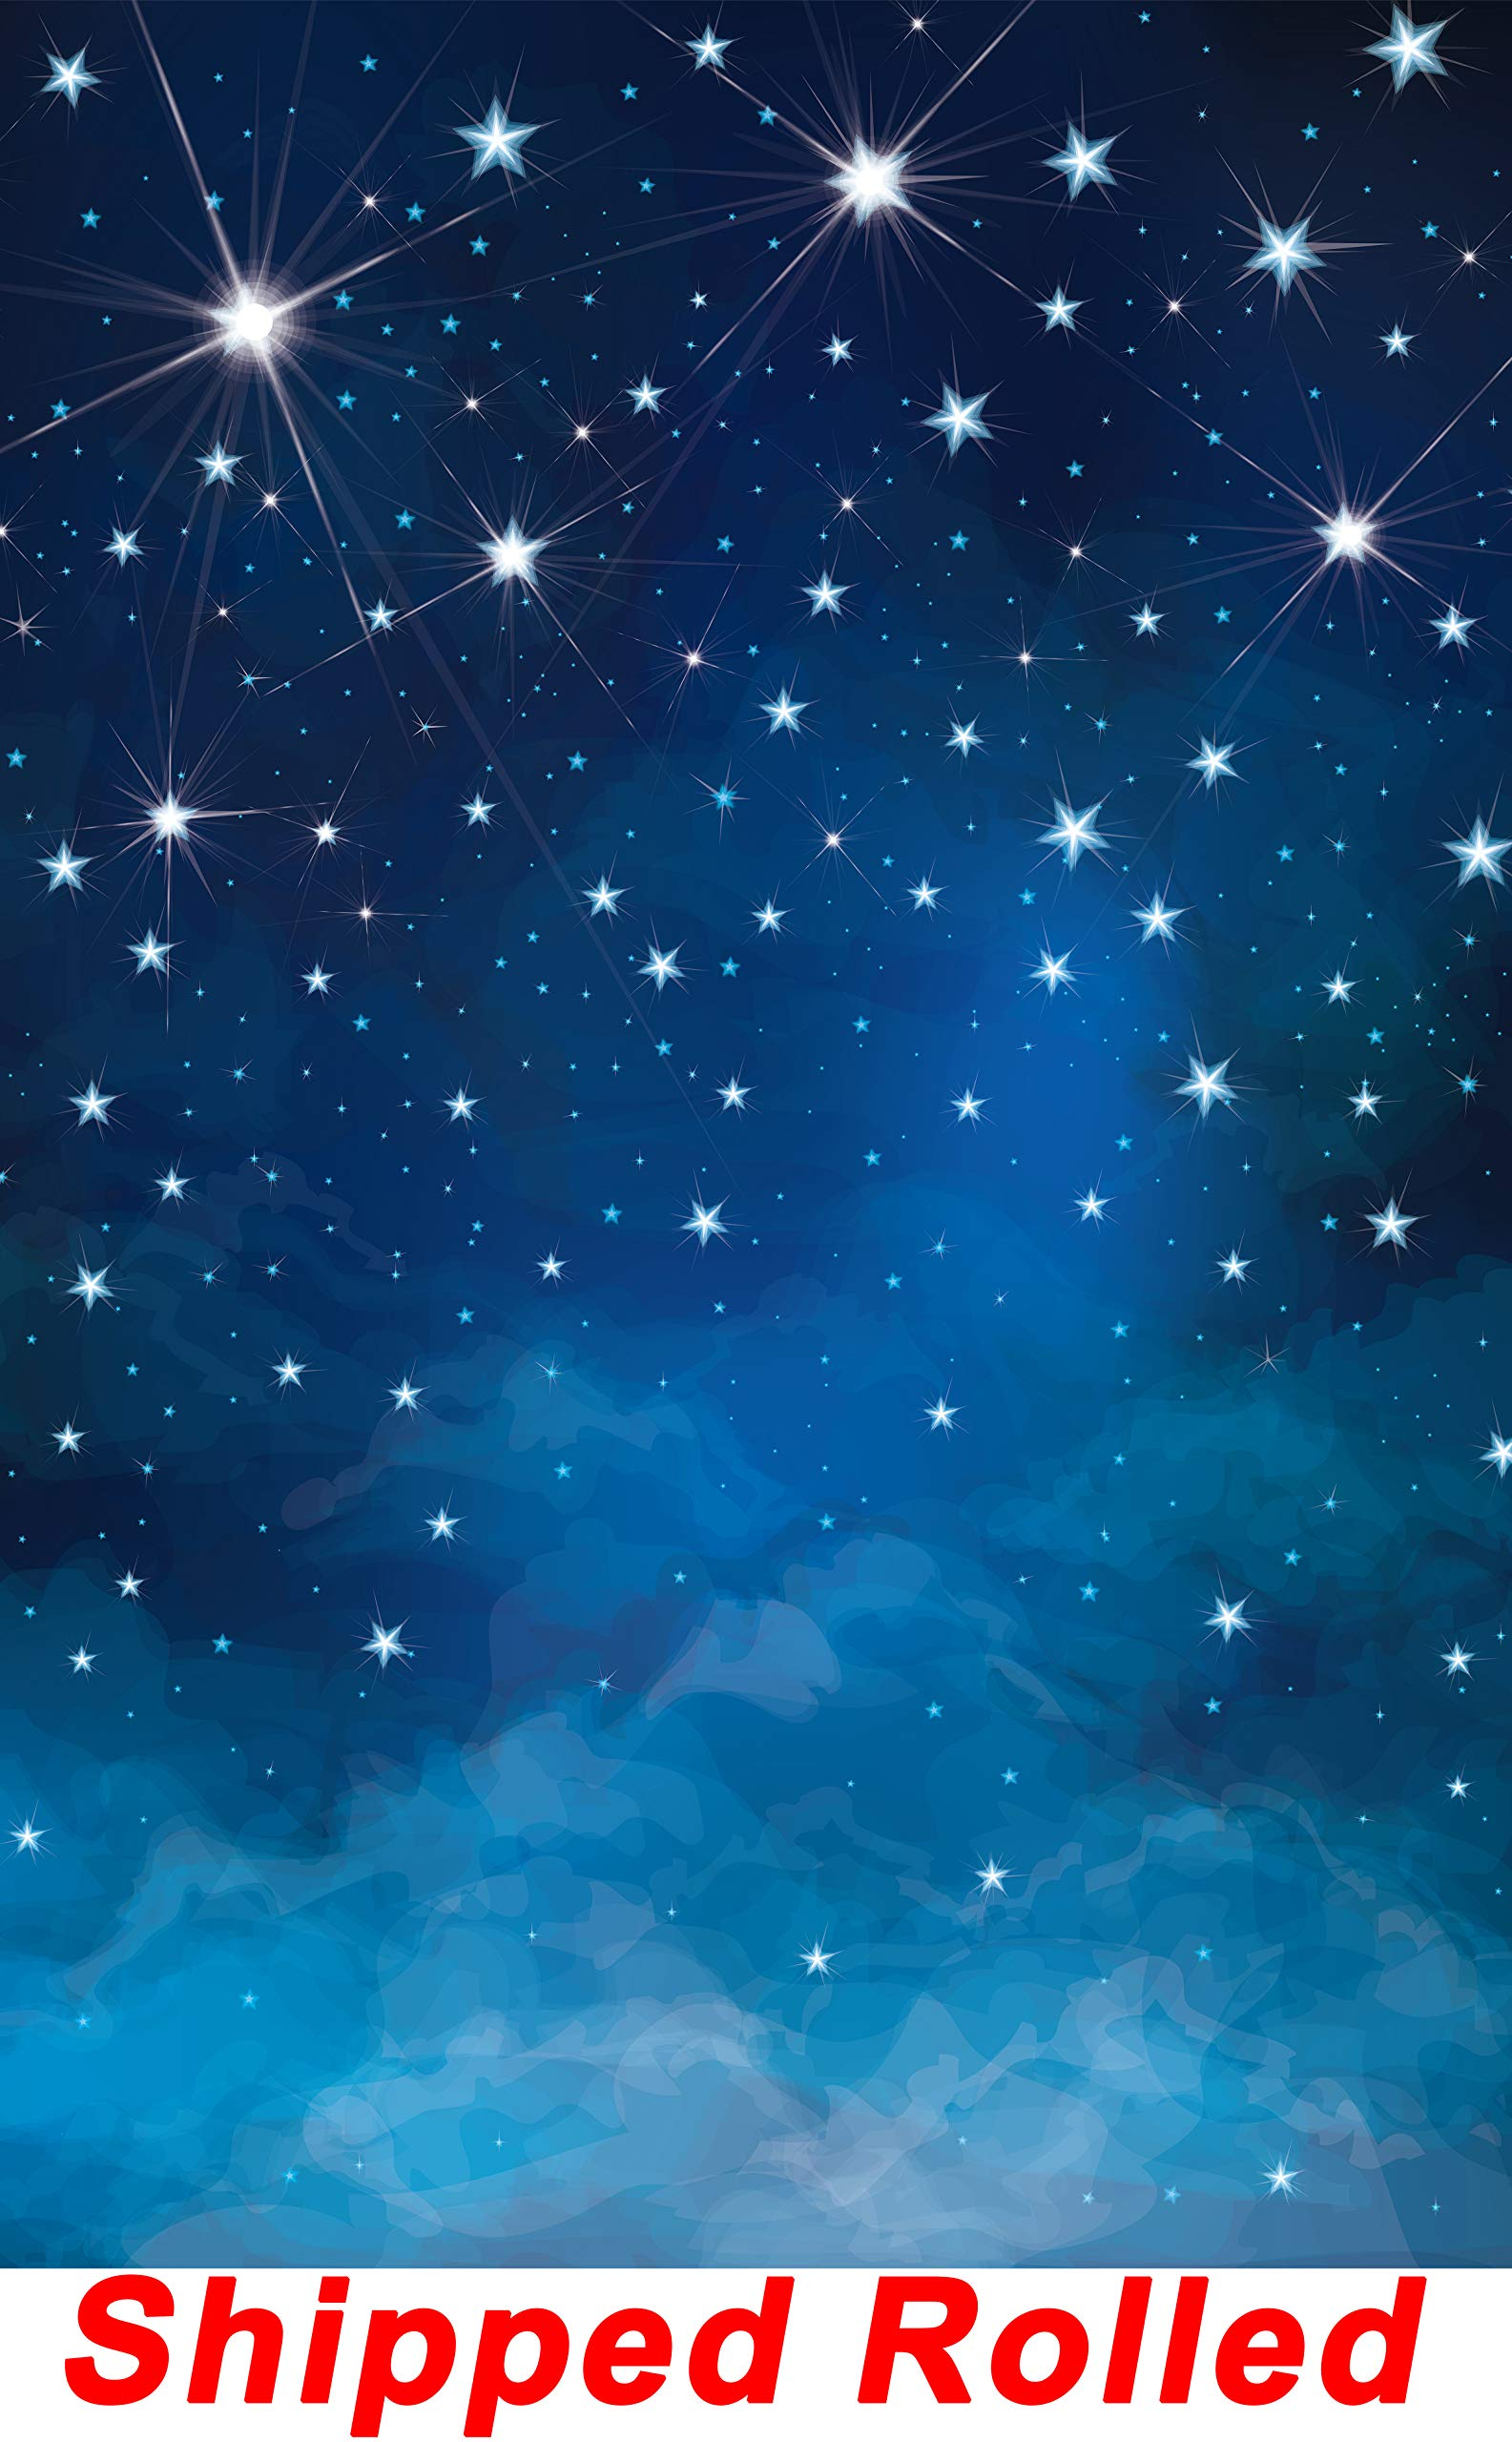 Blue Star Sky Backdrop Vintage Retro Dark Shiny Stars Sky Chic Galaxy Astronomy Star war Inspired Printed Canvas Photography Background (G1651, 8' Wide by 12' Tall)